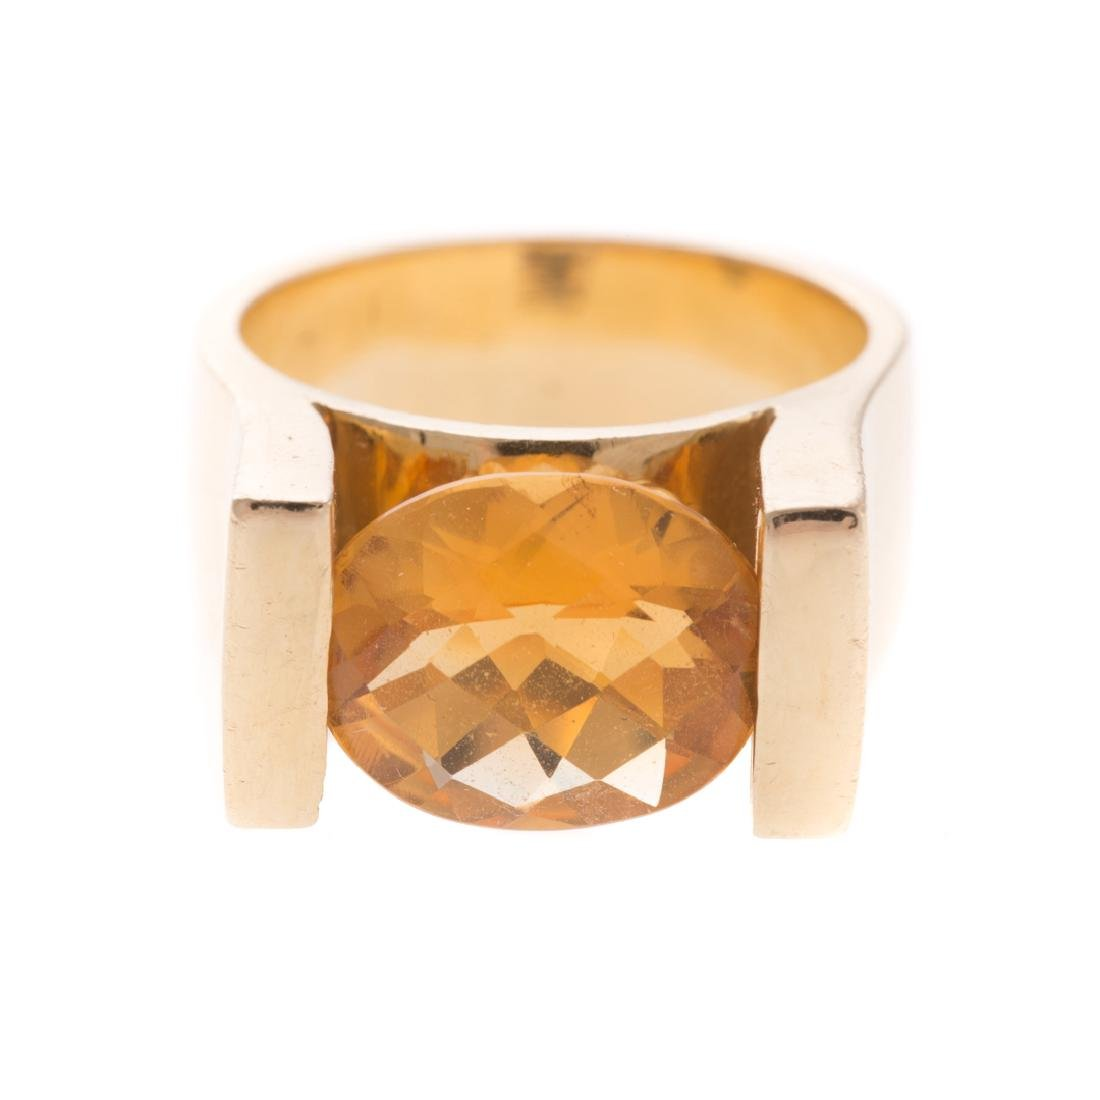 A Lady's Citrine Ring in 14K Gold